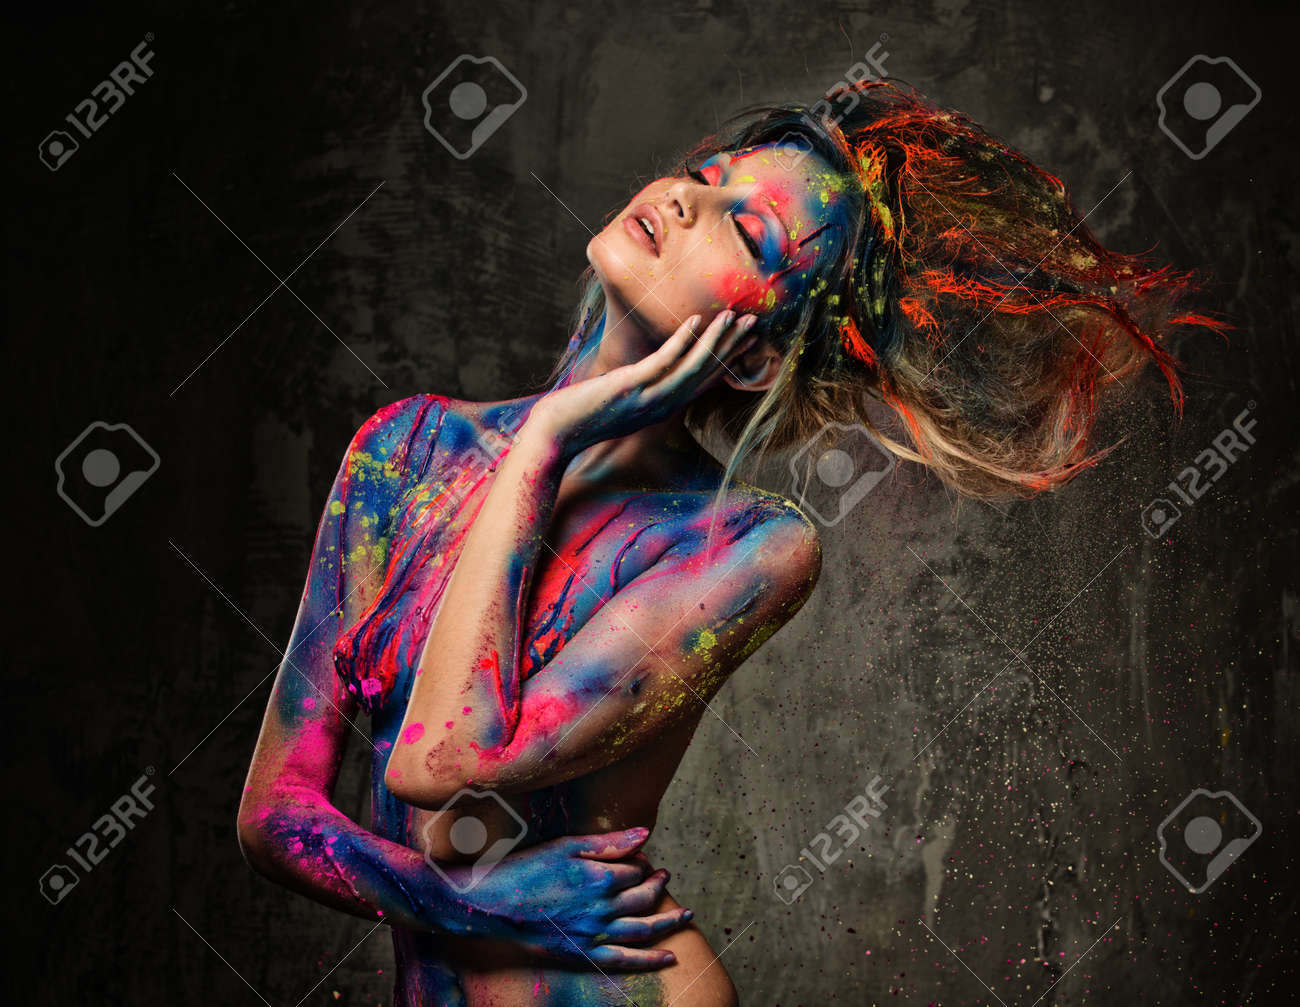 Young Woman Muse With Creative Body Art And Hairdo Stock Photo Picture And Royalty Free Image Image 25739978